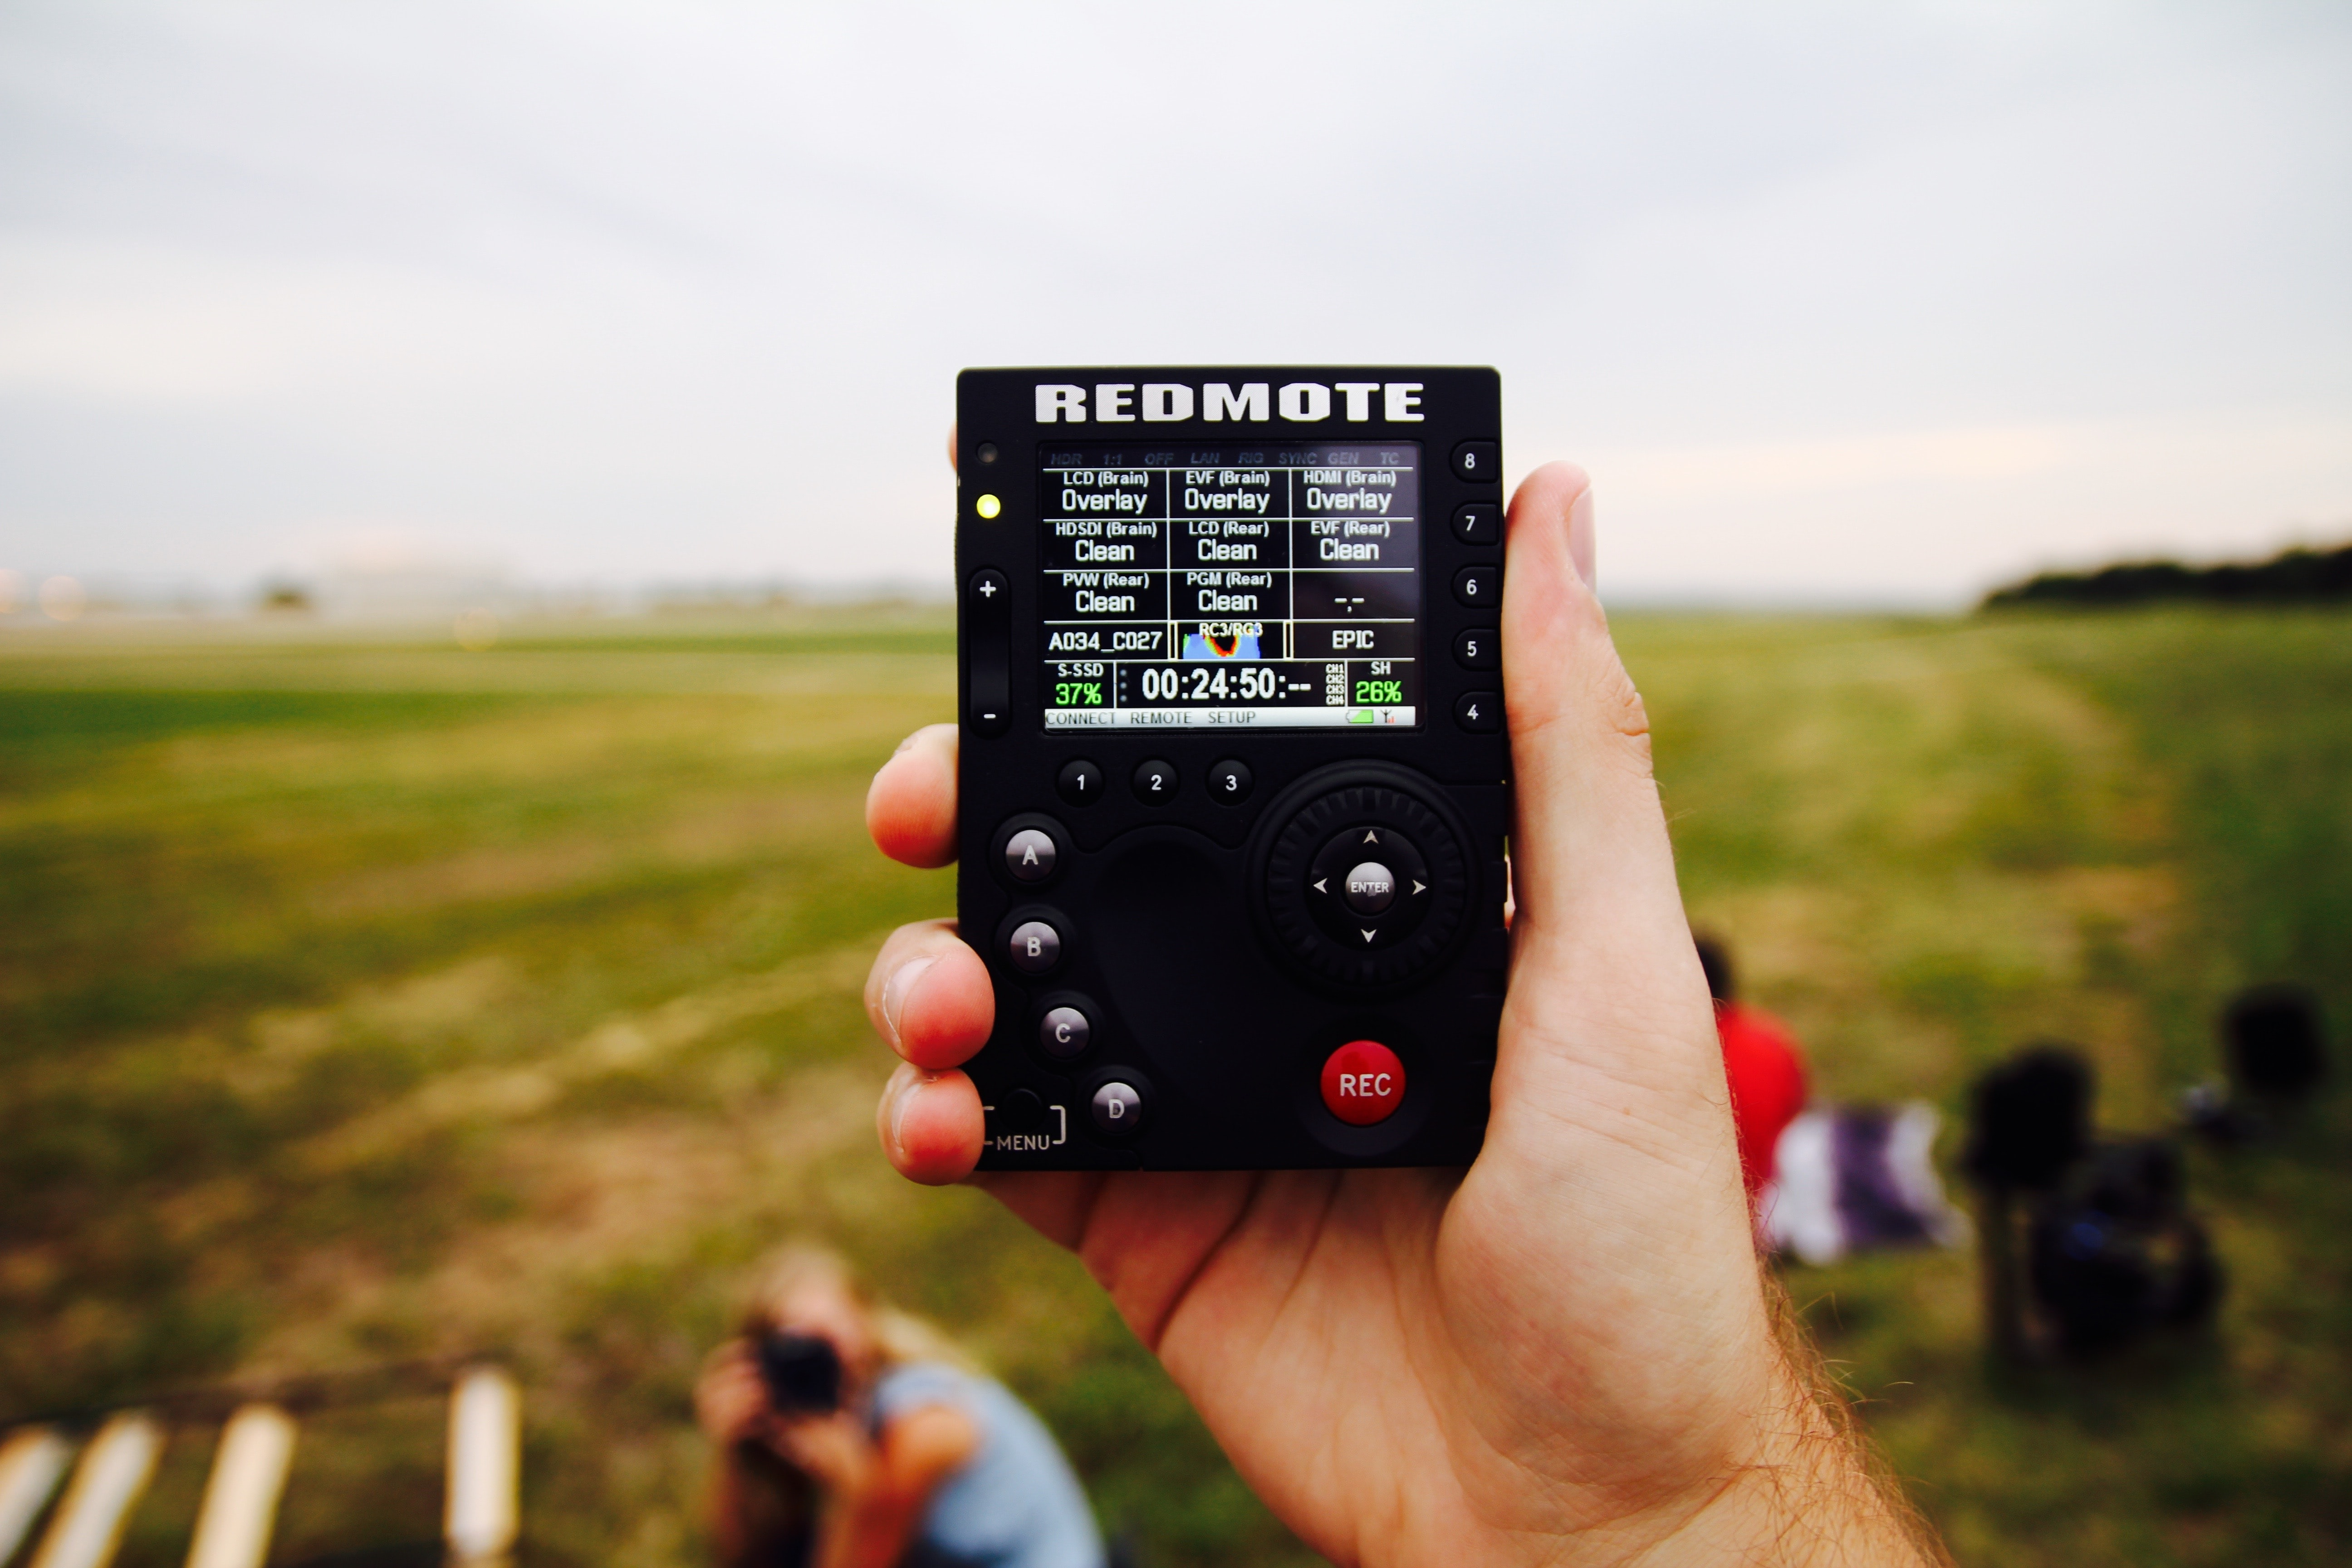 Hand holding black Redmote remote with record button in front of a field